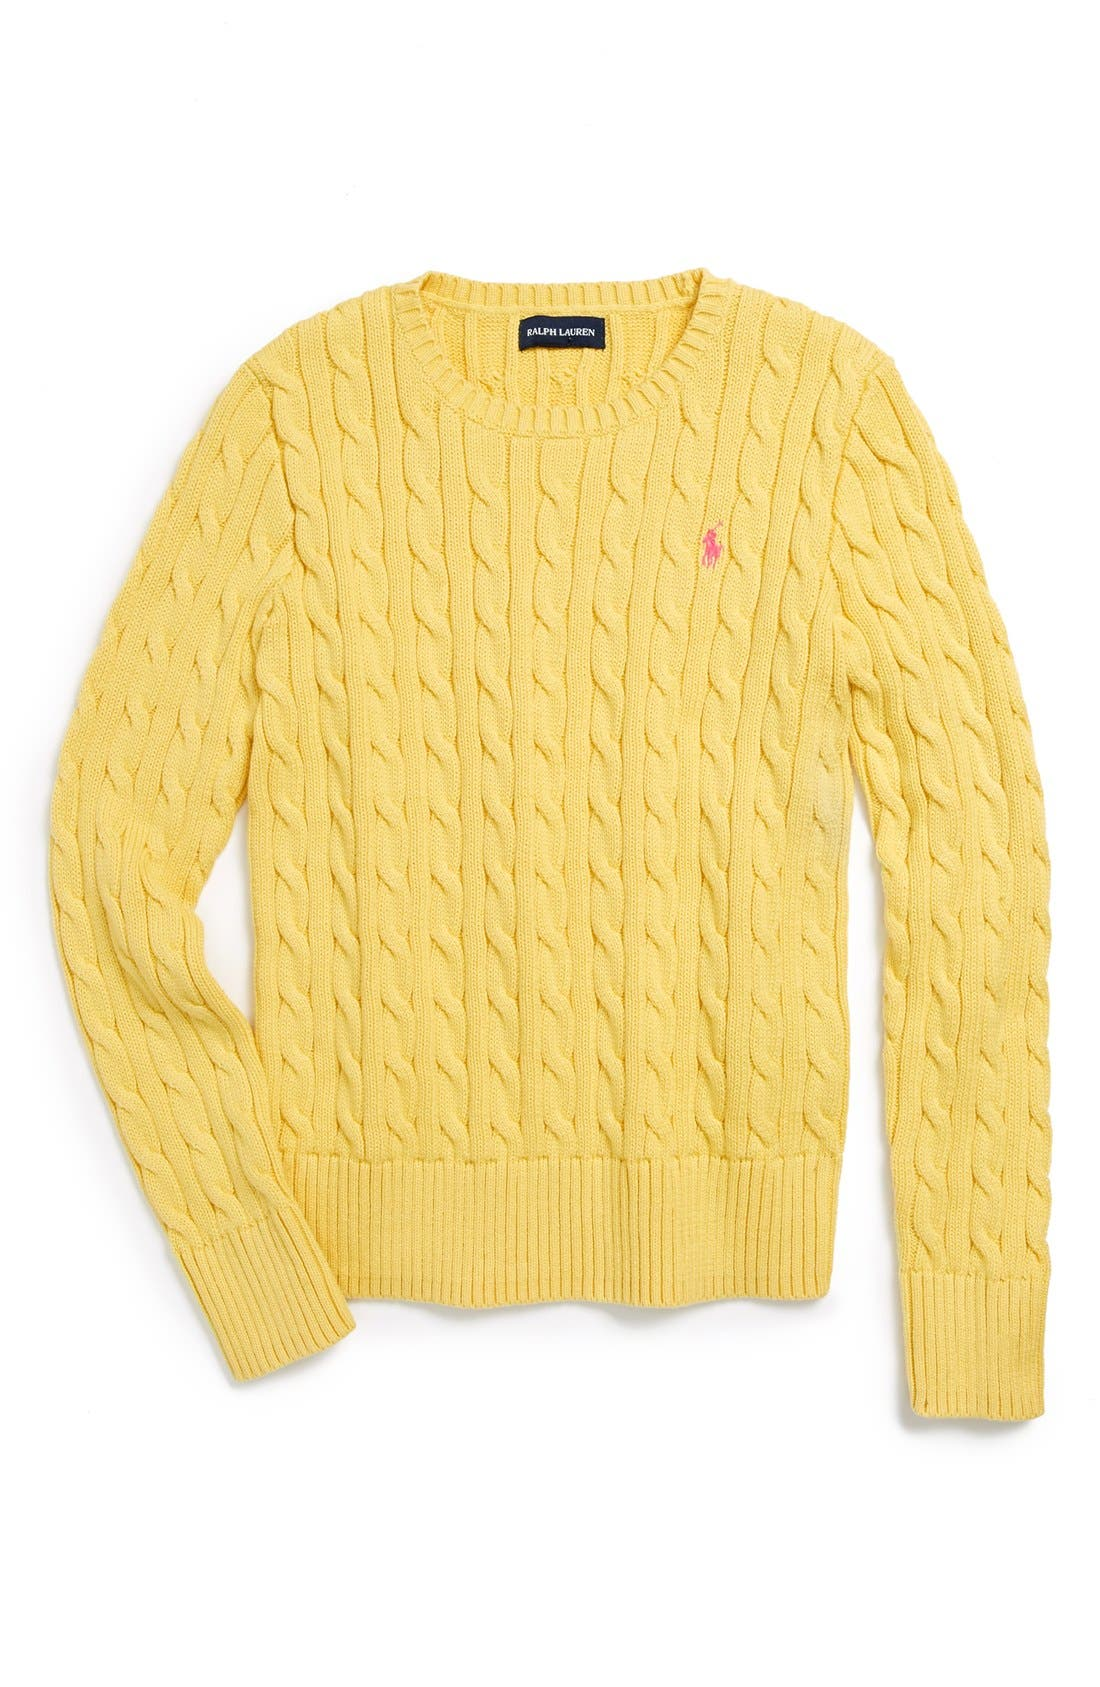 Alternate Image 1 Selected - Ralph Lauren Cotton Cable Knit Sweater (Little Girls)